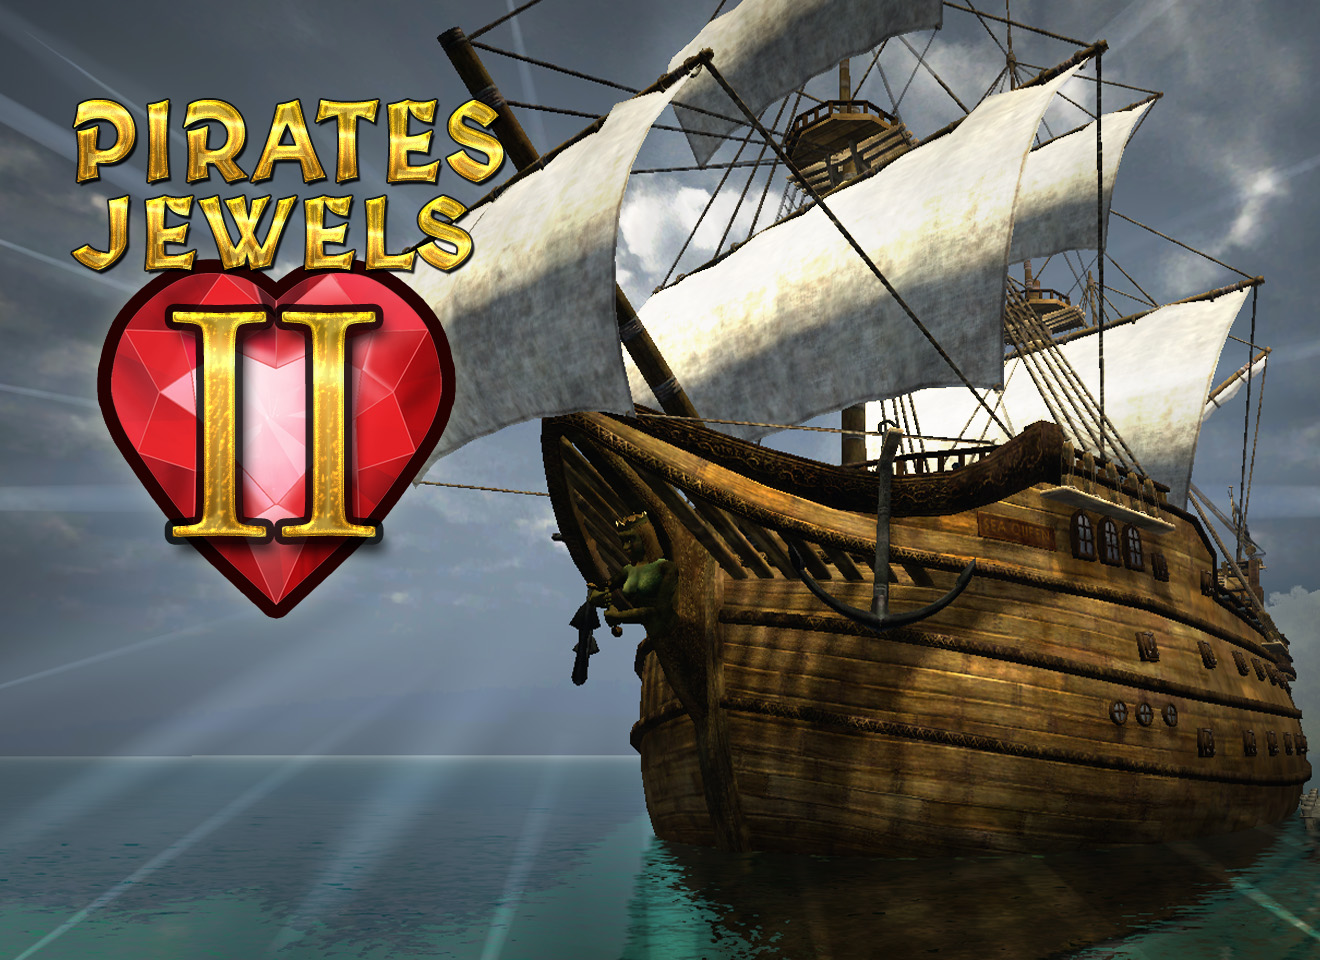 Pirates Jewels II